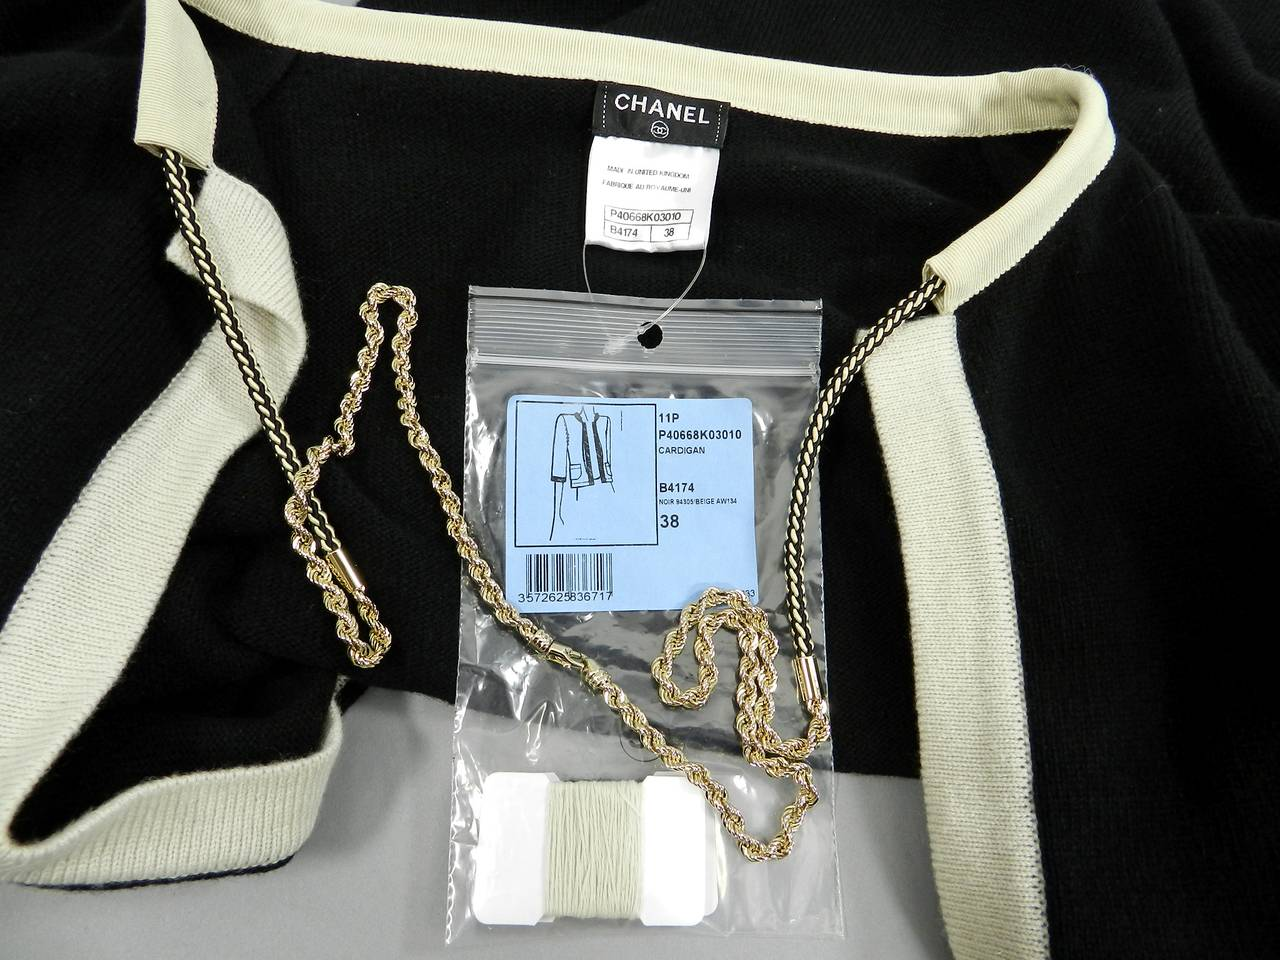 Chanel 11P Black Cashmere Cardigan with Gold Chain 4